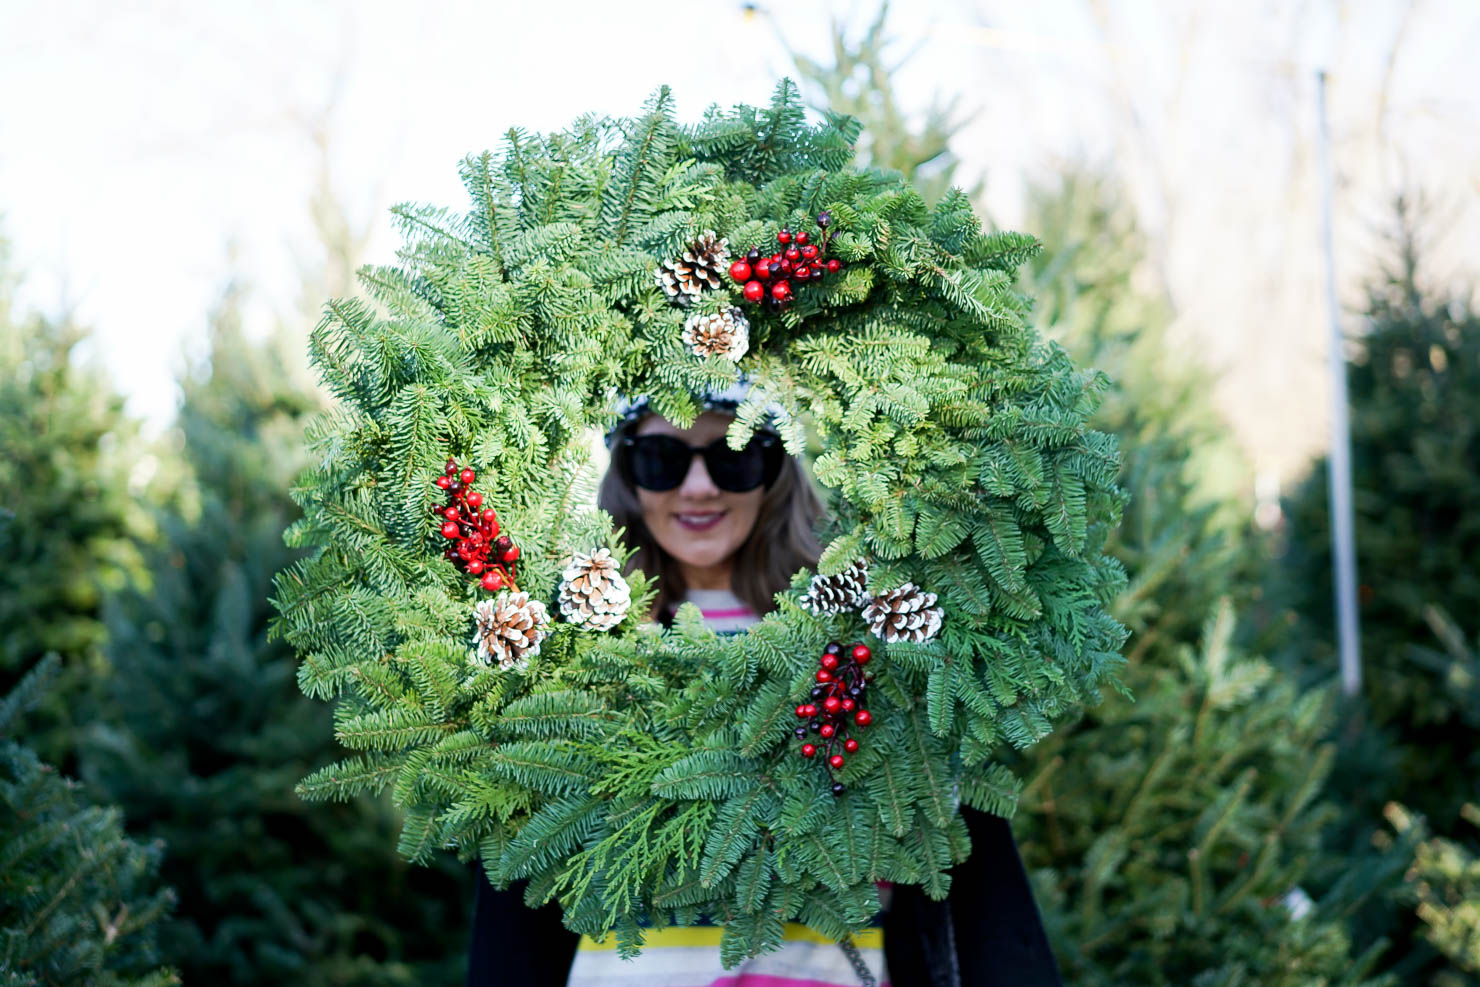 The Best Pklace To Get A Christmas Tree In Chicago What Things To Do In Chicago In December What To Wear To A Christmas Tree Farm How To Pick A Christmas Tree Casual Winter Outfit 13 Wishes Reality